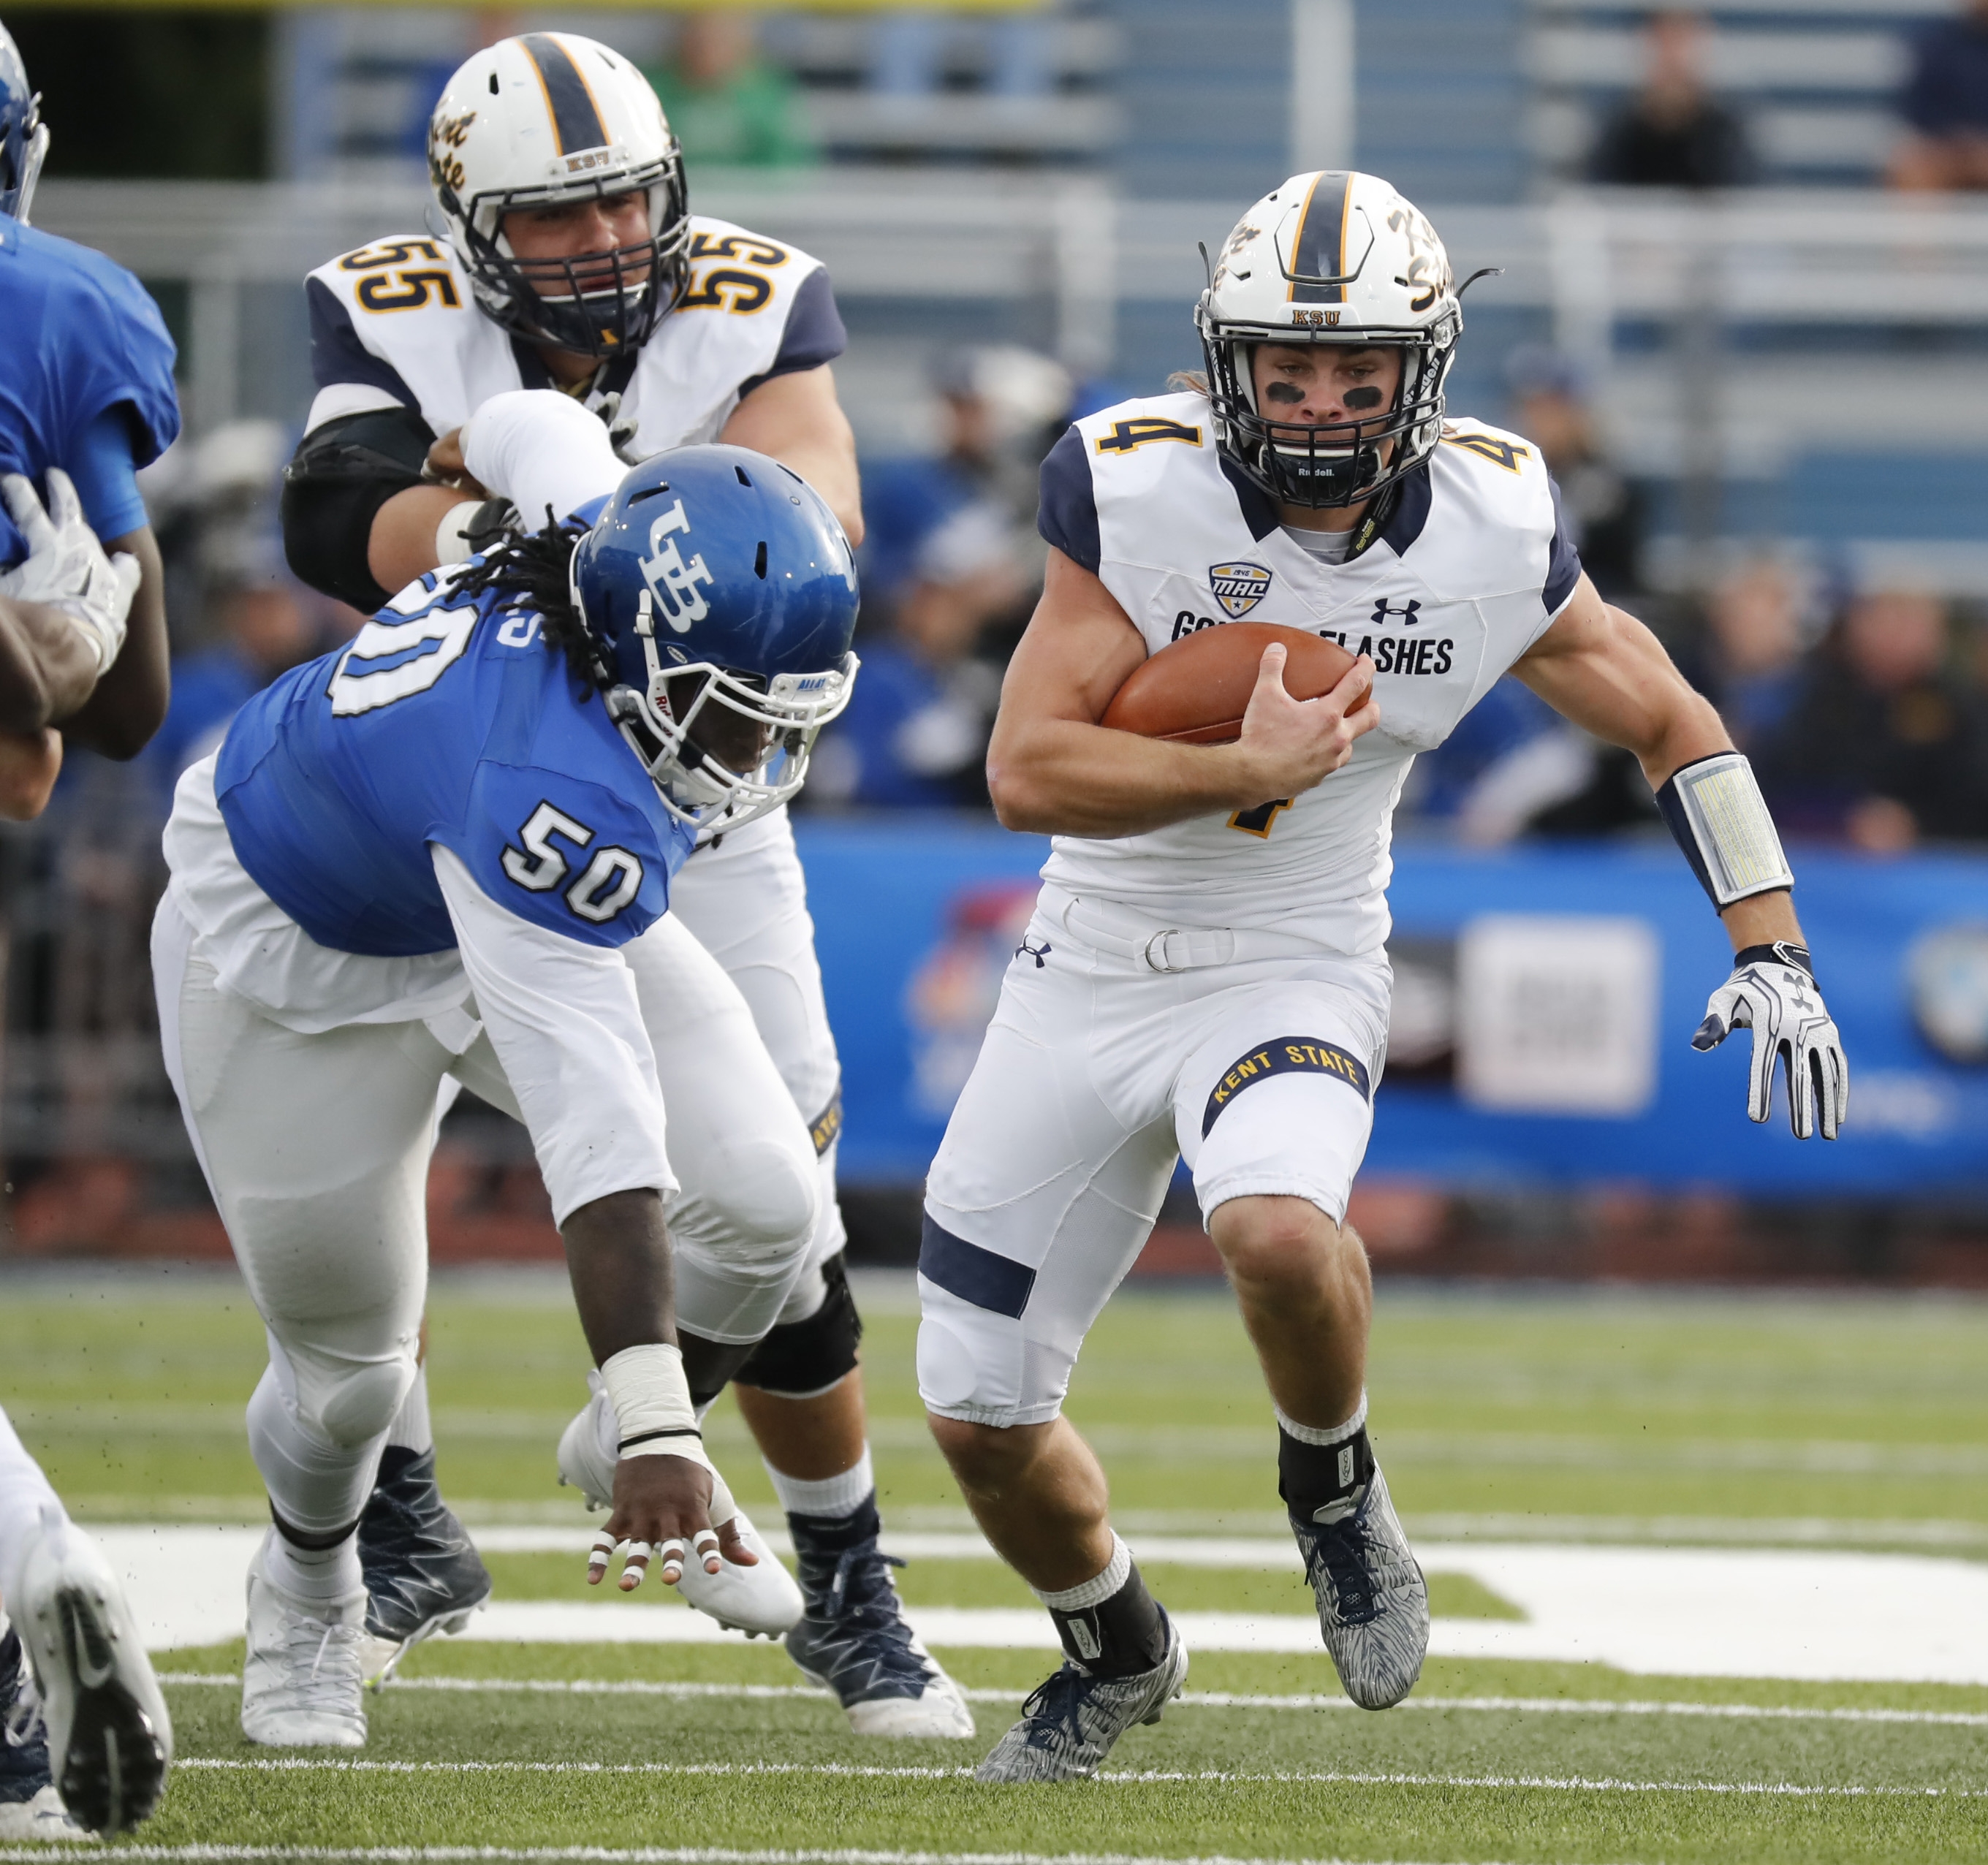 Kent State quarterback Nick Holley put UB defenders in his rearview mirror while piercing the Bulls for 224 rushing yards.